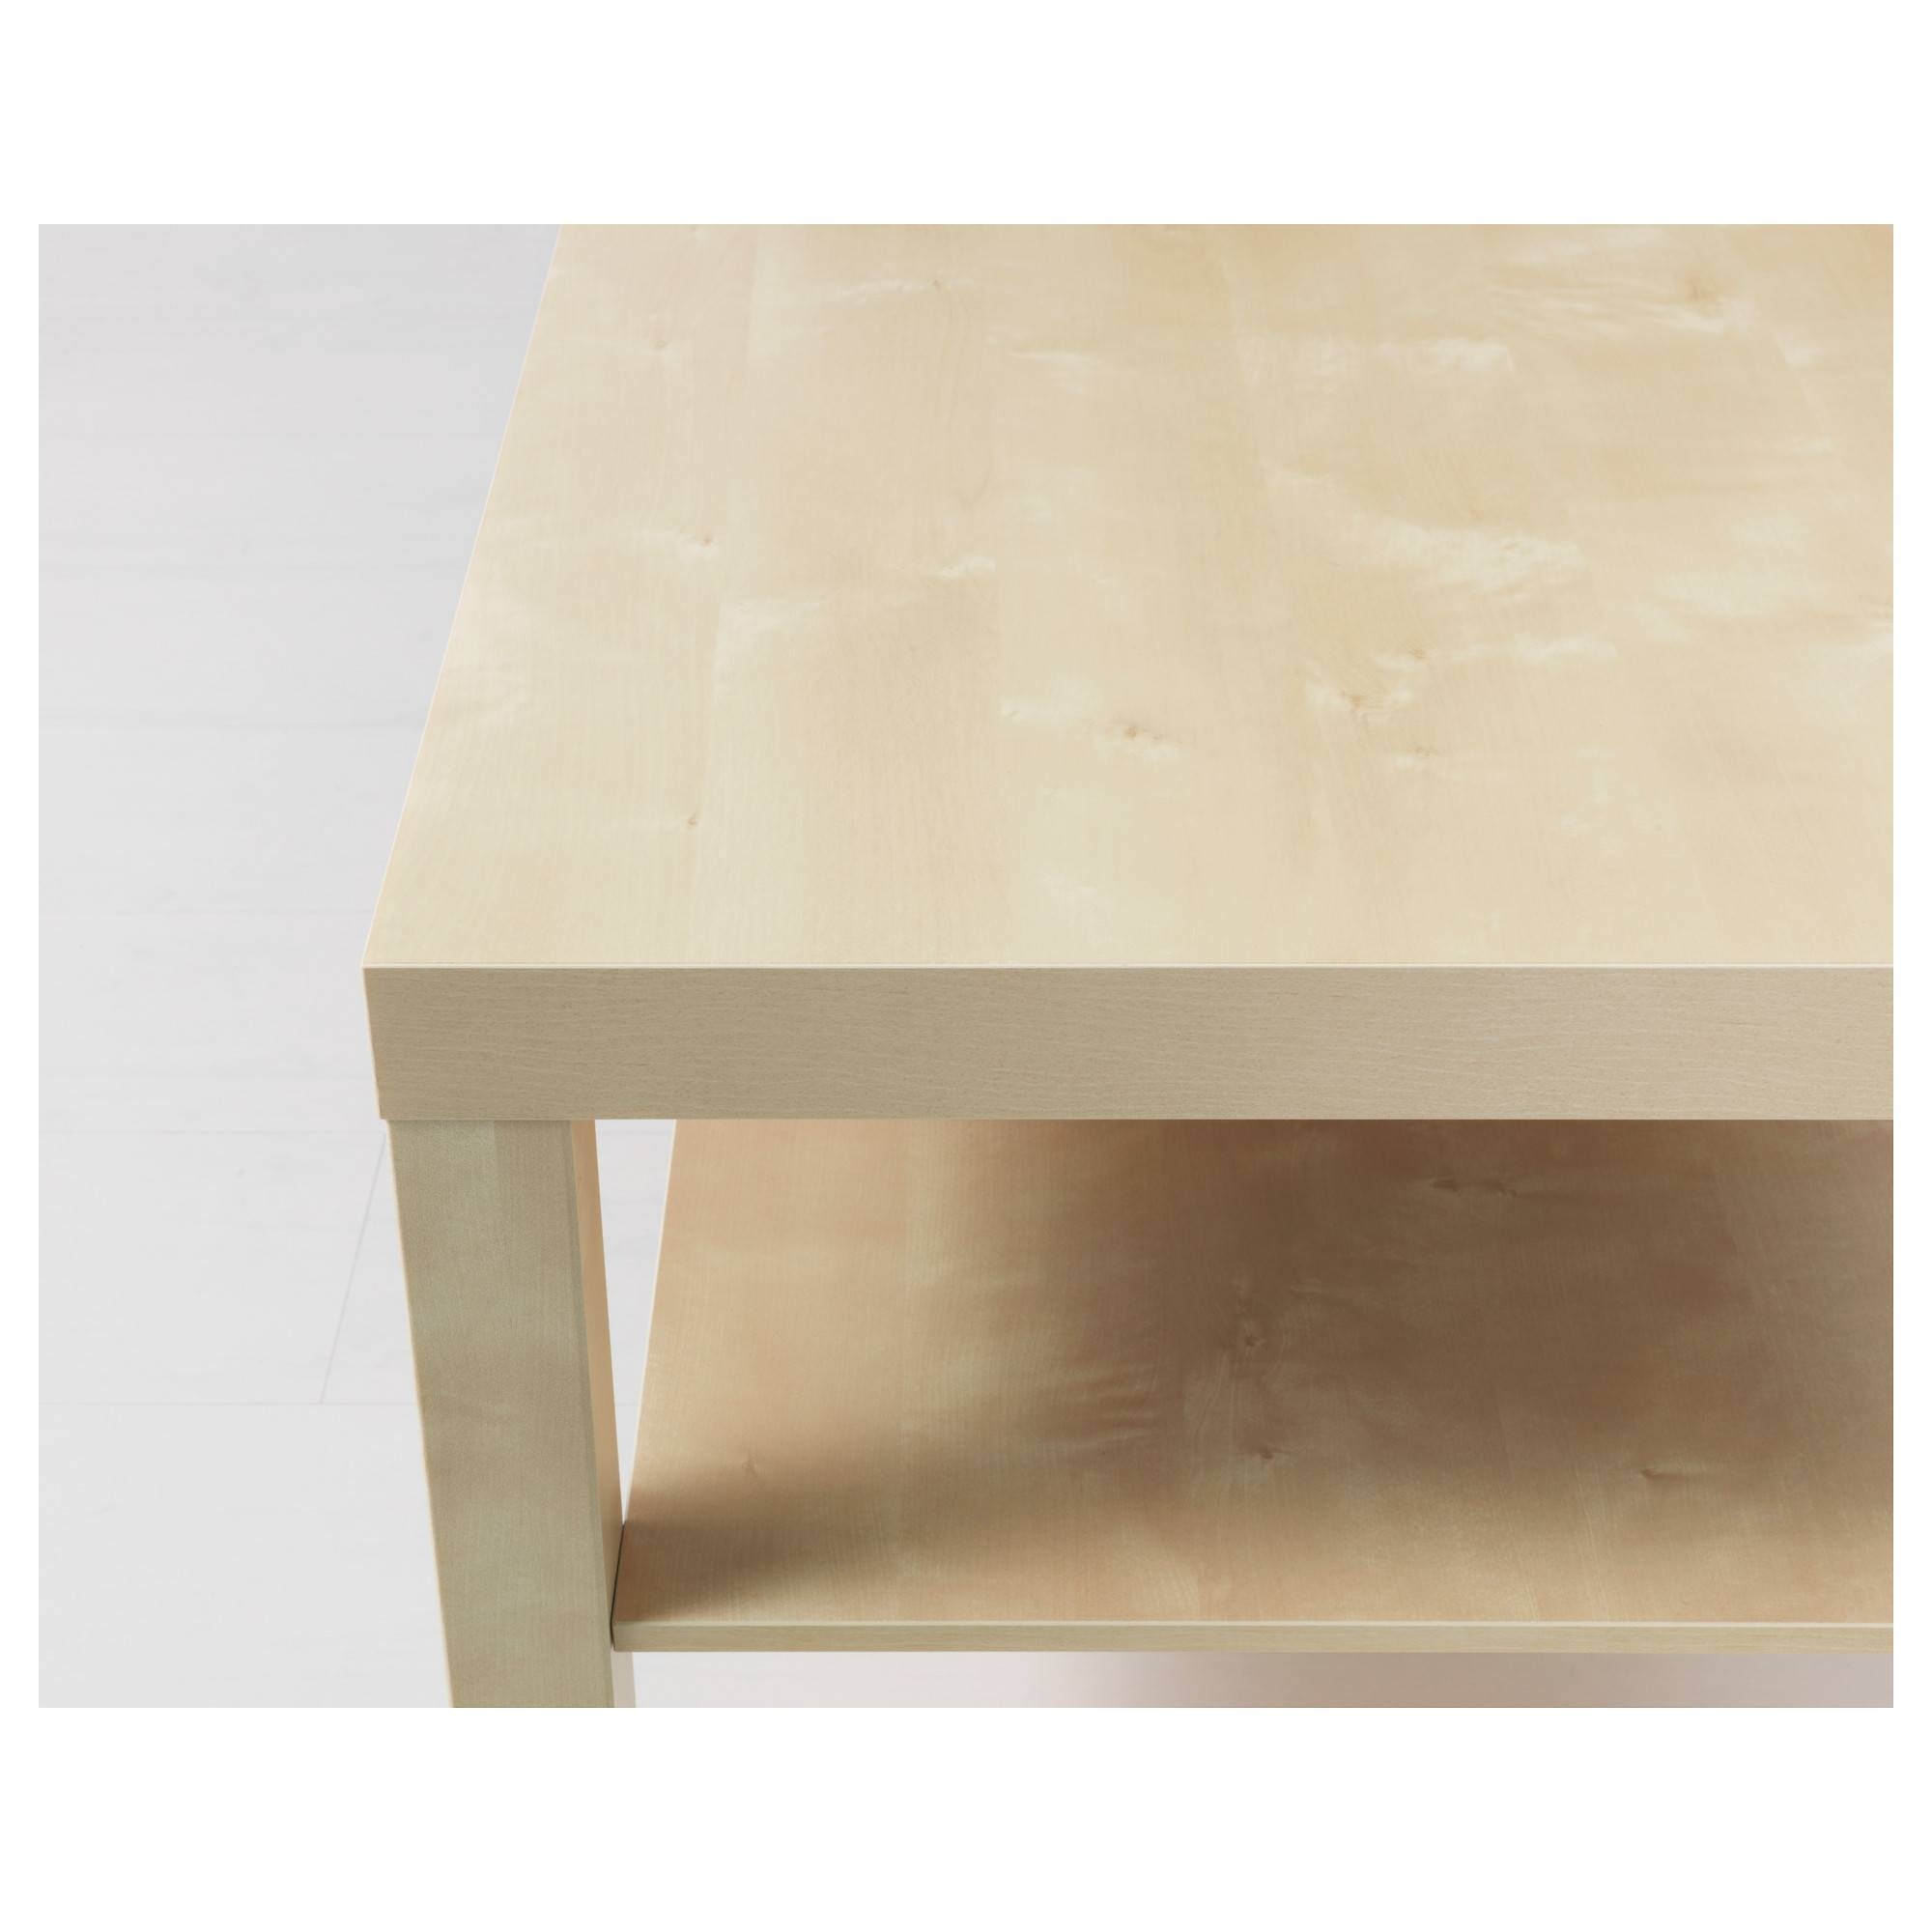 "Lack Coffee Table - Birch Effect, 35 3/8X21 5/8 "" - Ikea intended for Birch Coffee Tables (Image 16 of 30)"